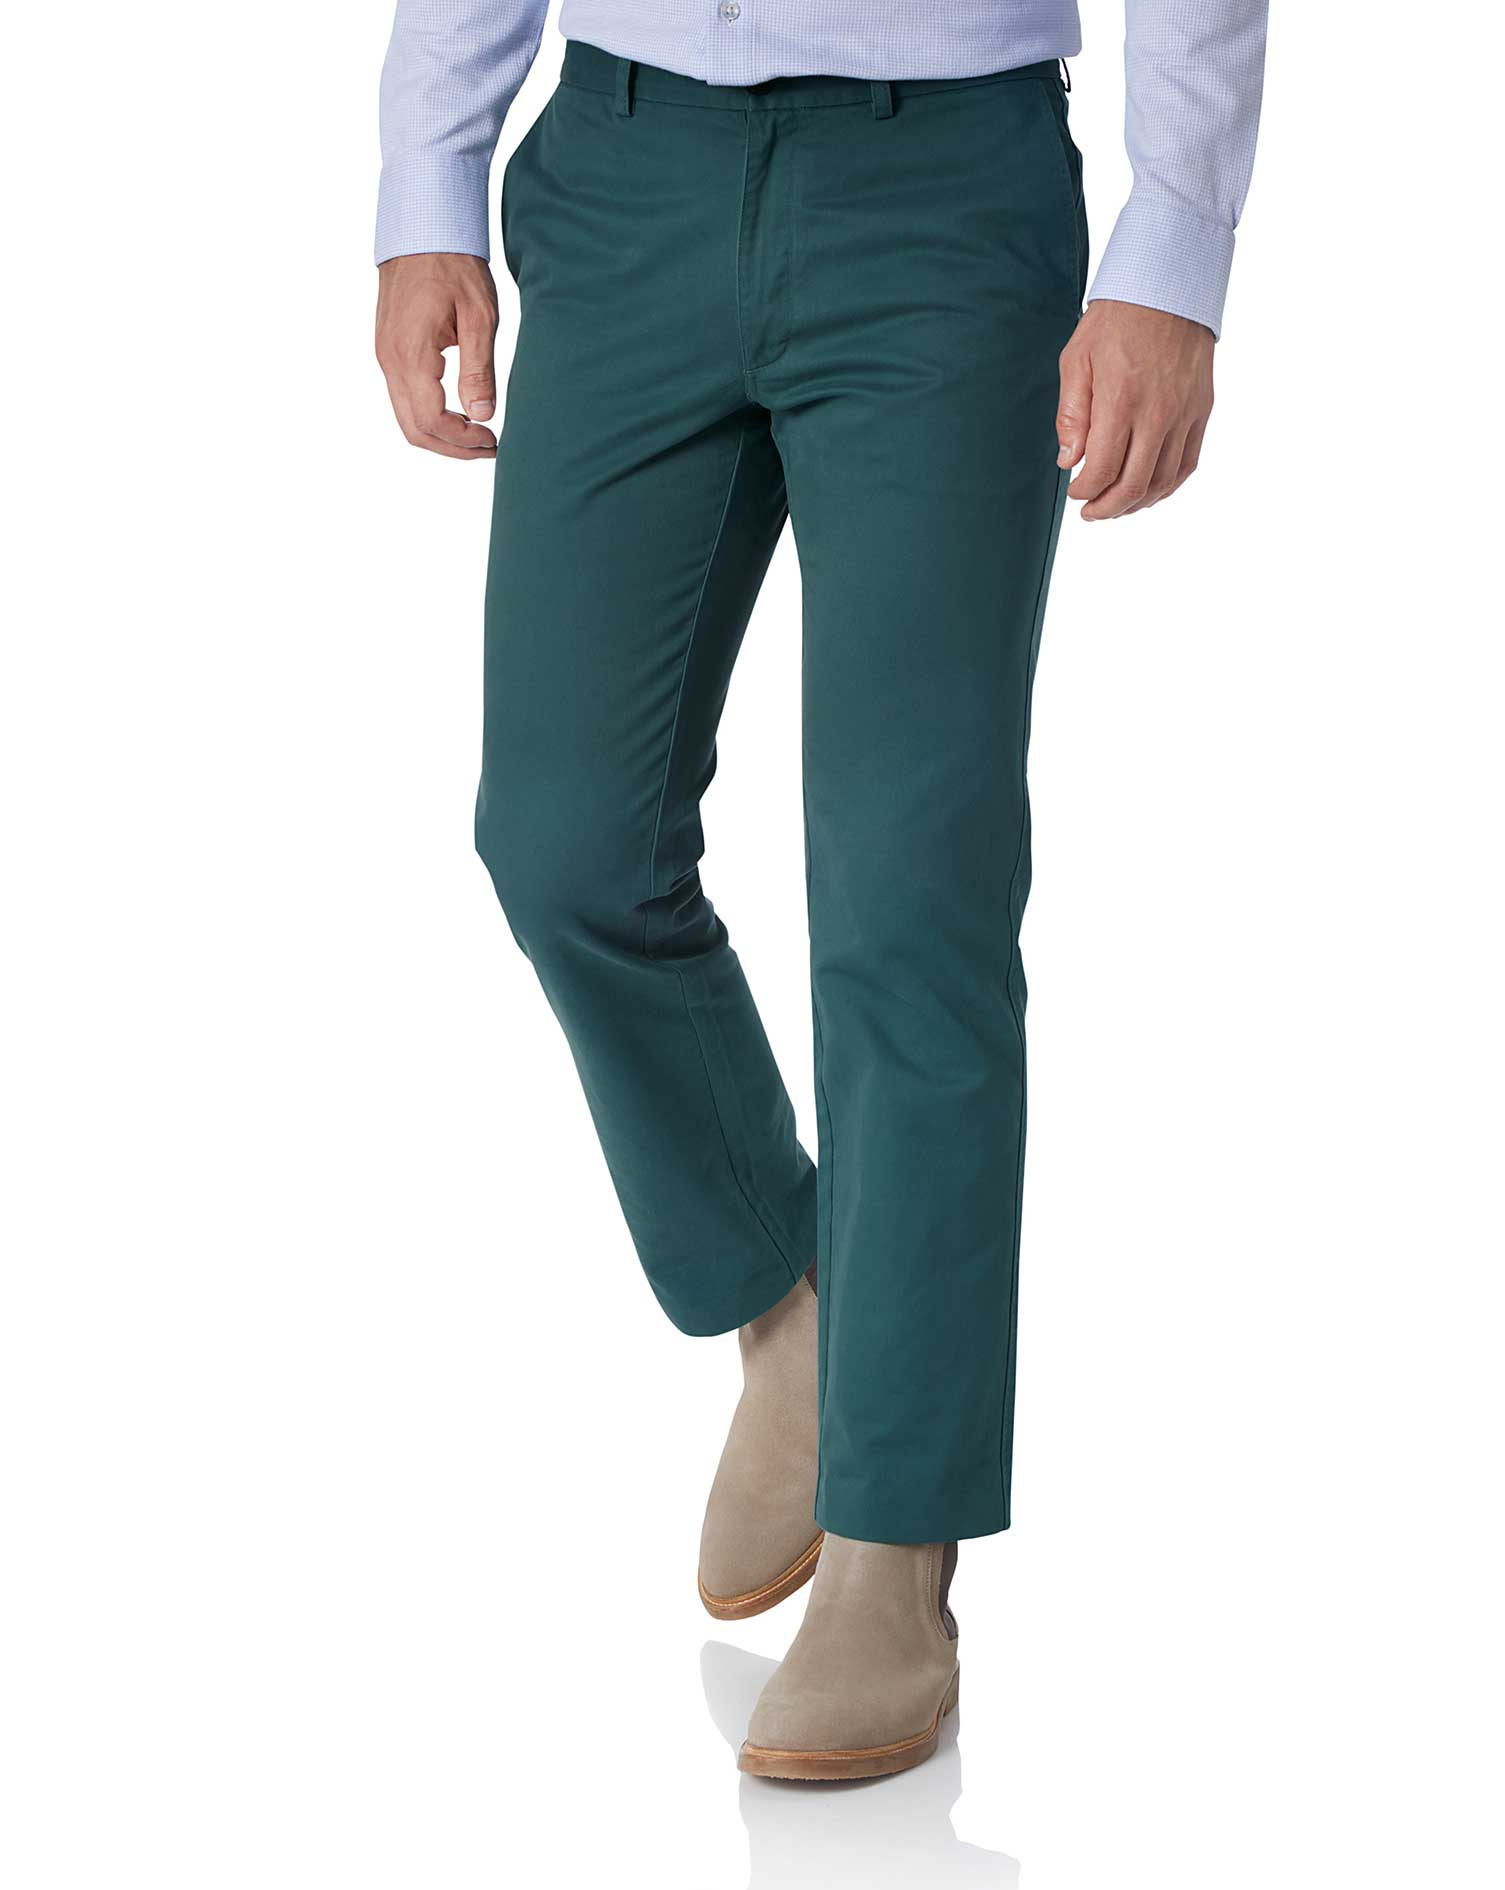 Teal Slim Fit Flat Front Washed Cotton Chino Trousers Size W40 L32 by Charles Tyrwhitt